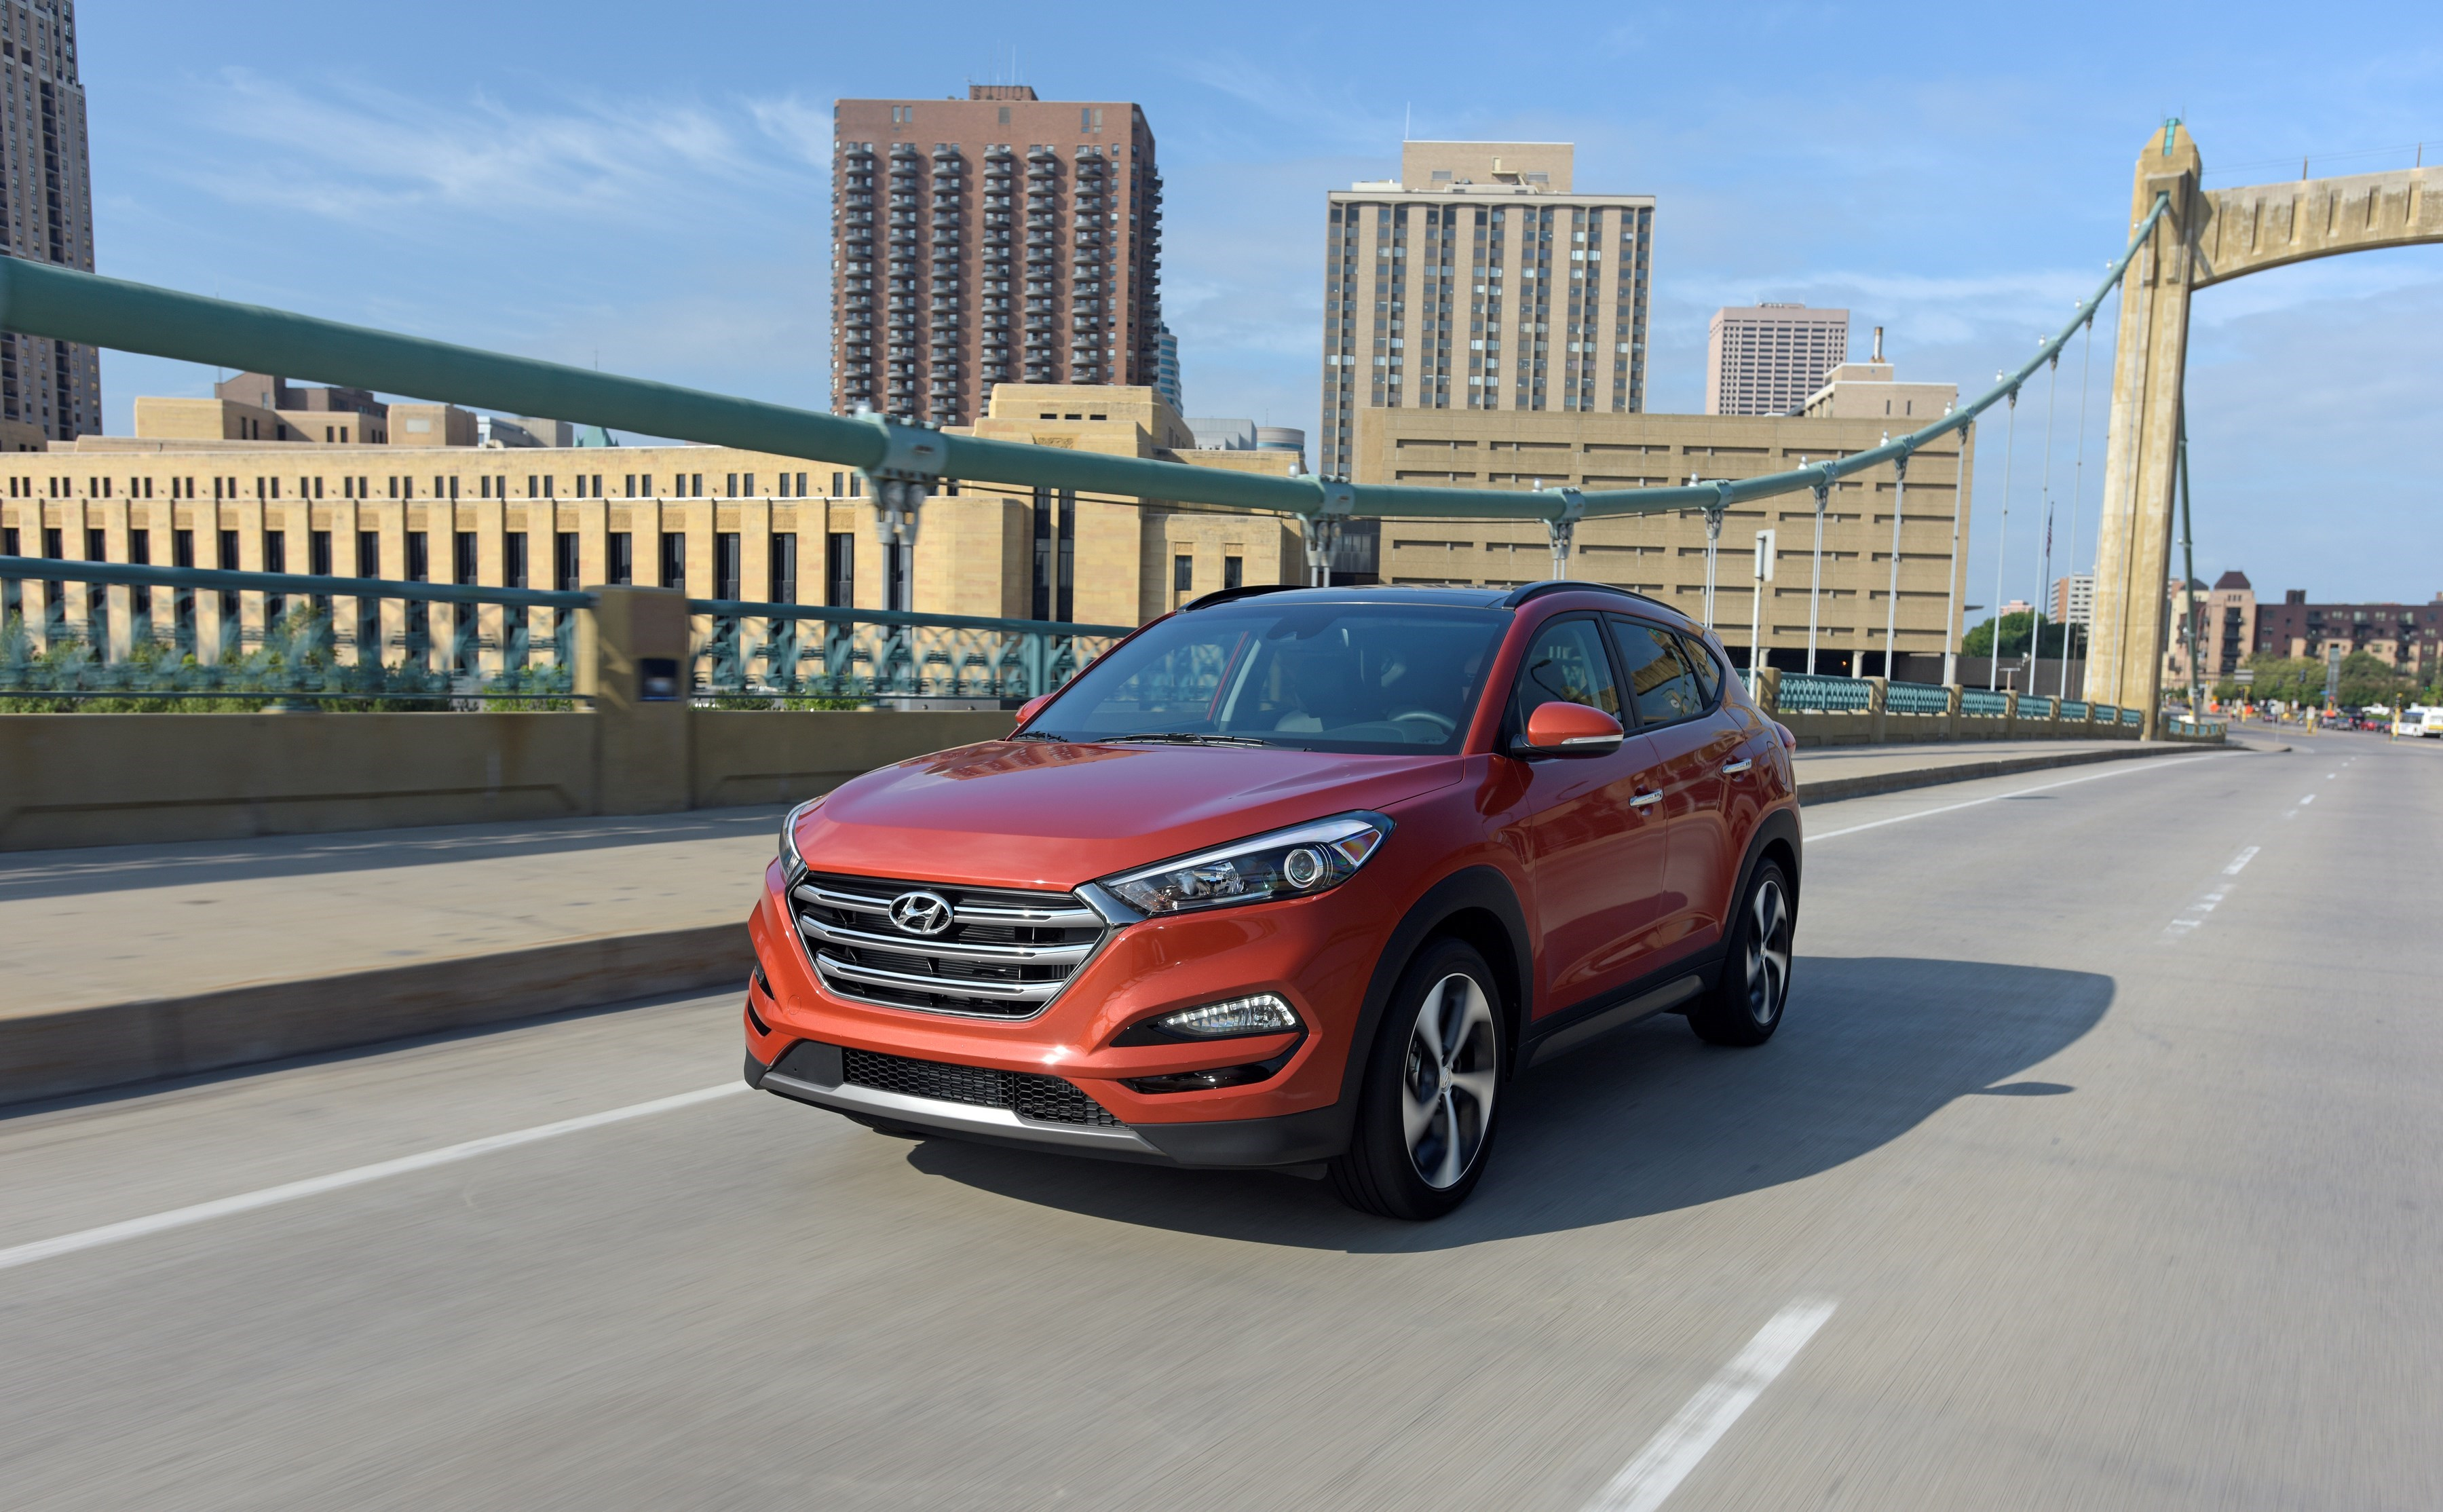 revealed hyundai view news large suvs tucson the model sport auto a week after